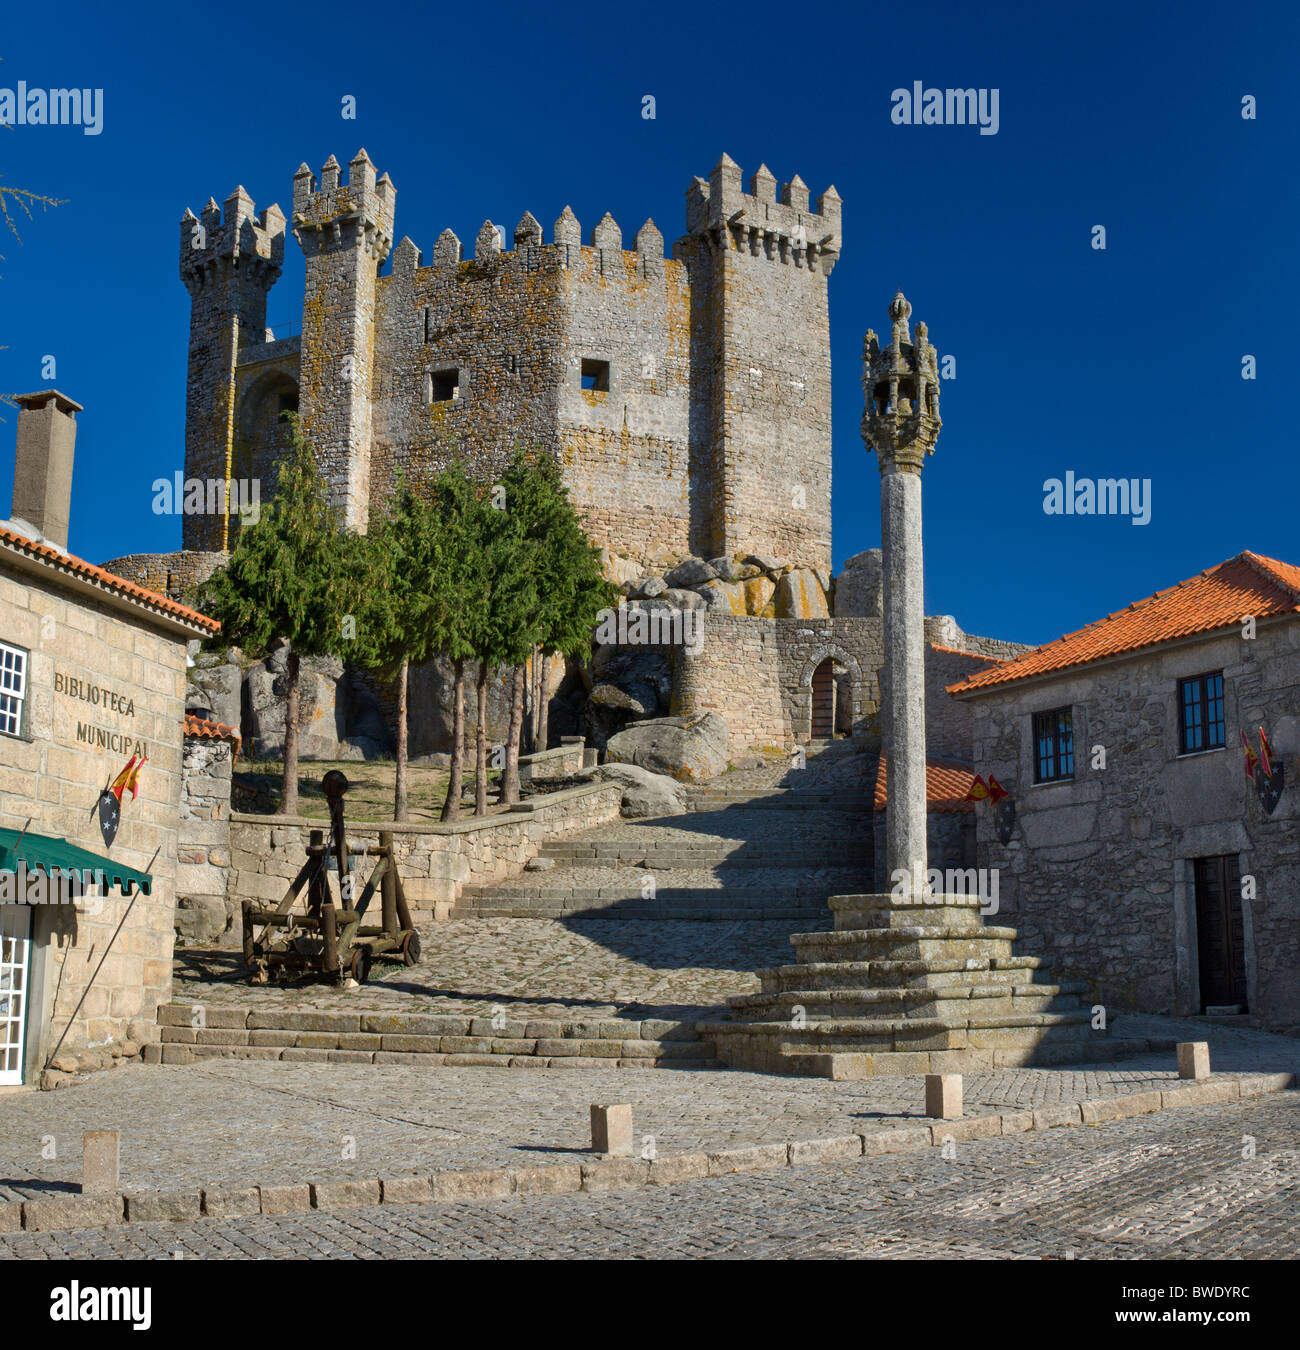 Portugal, the Beira Alta, Penedono castle and pillory Stock Photo, Royalty Free Image 32883968